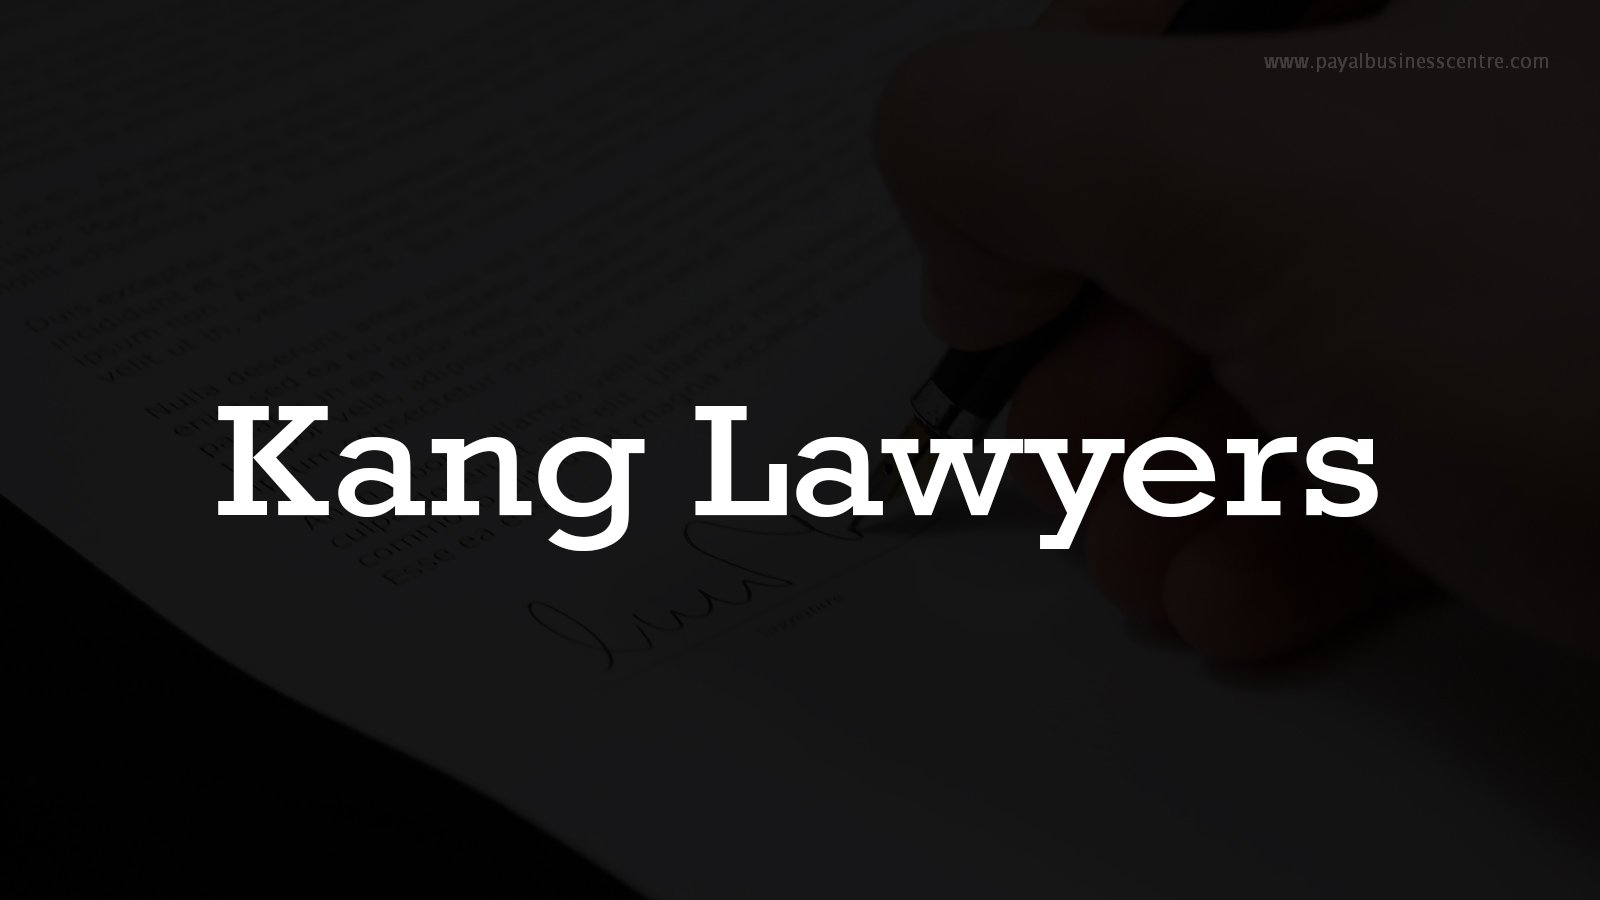 Kang Lawyers - Lawyers - 12885 80 Ave